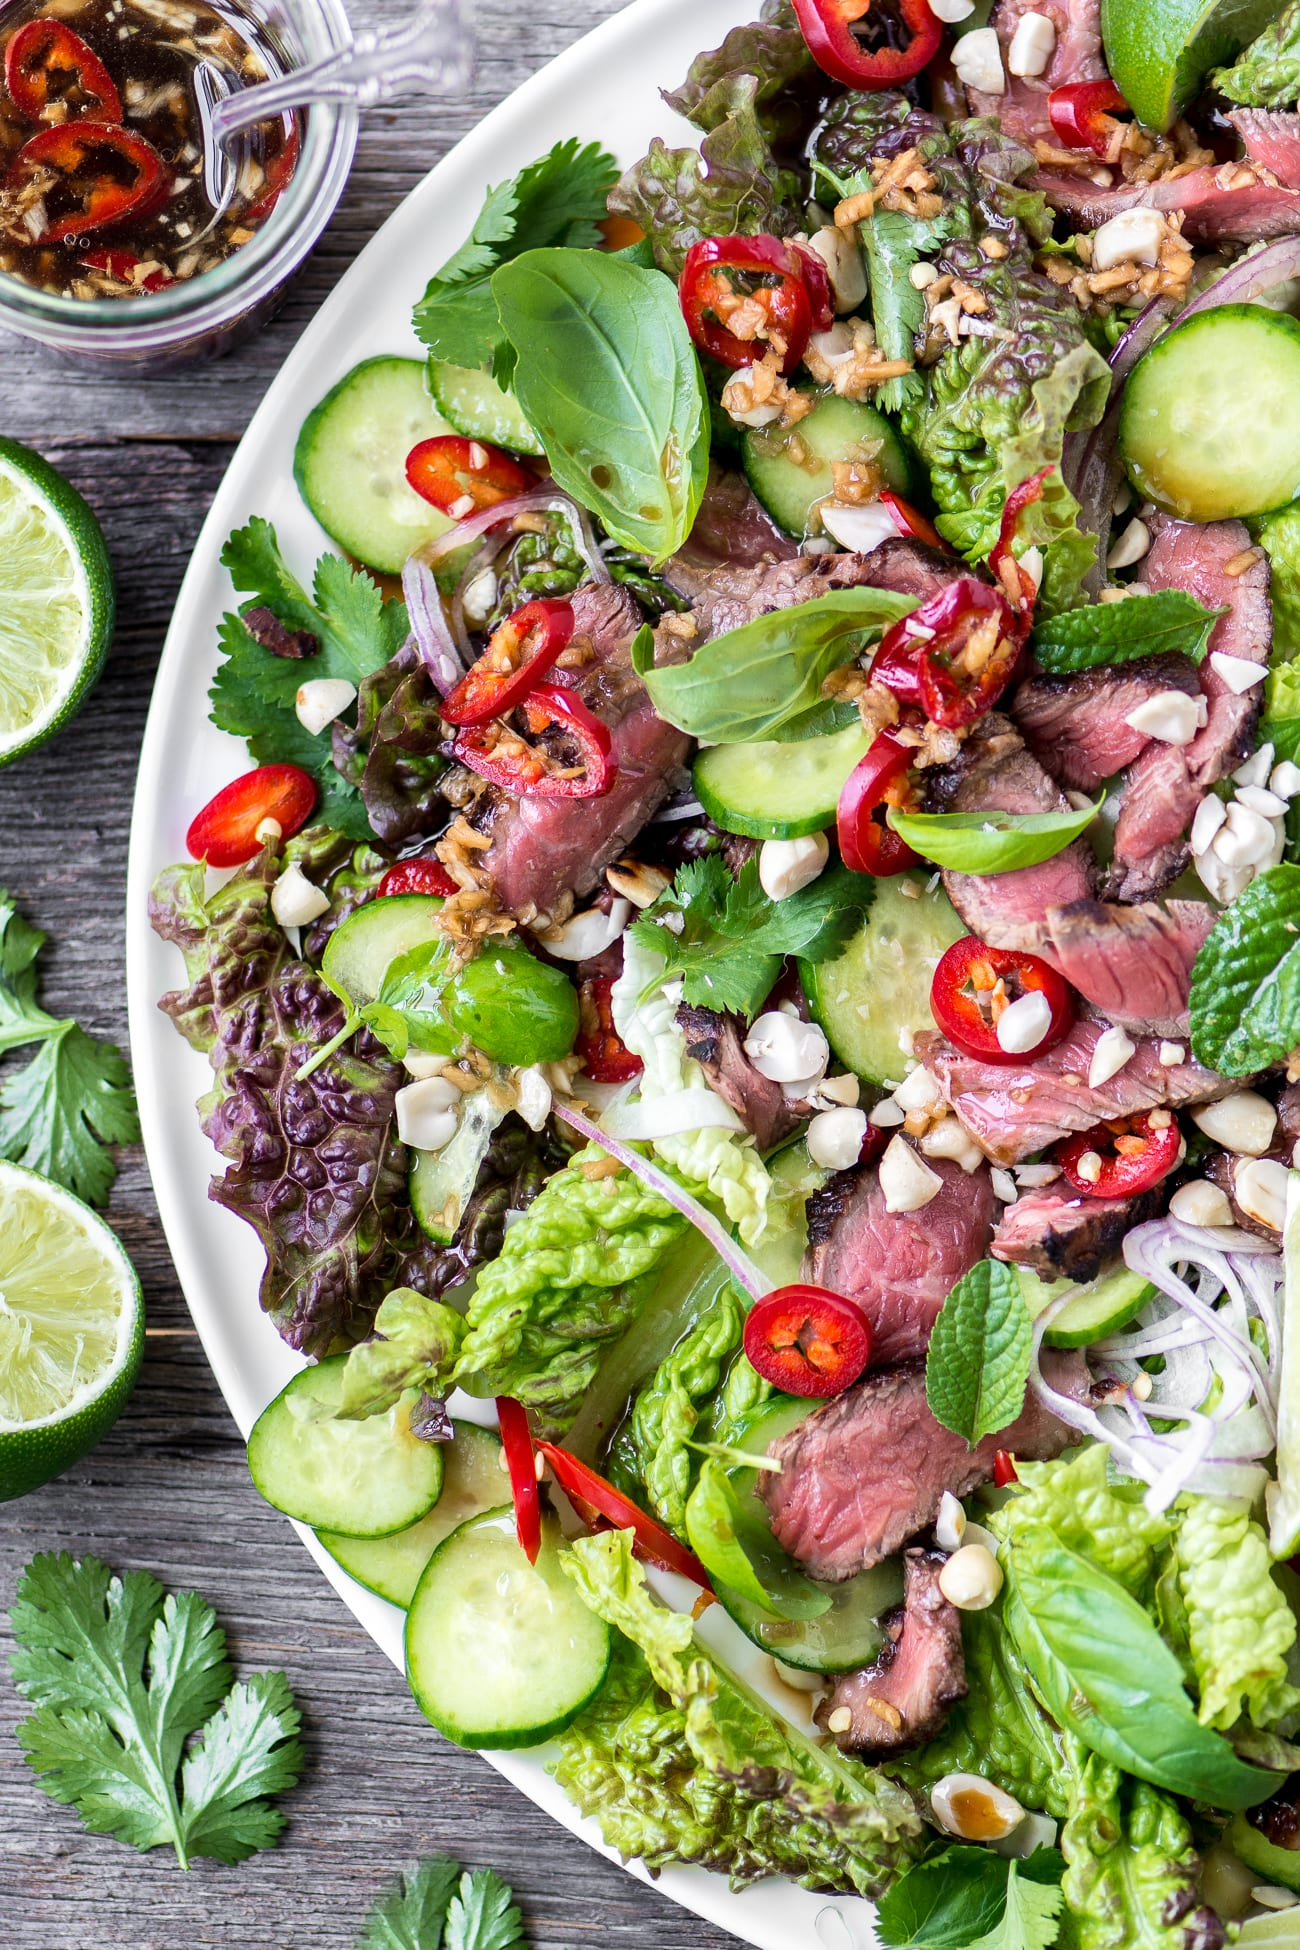 Thai Beef Salad garnished with chilis and limes